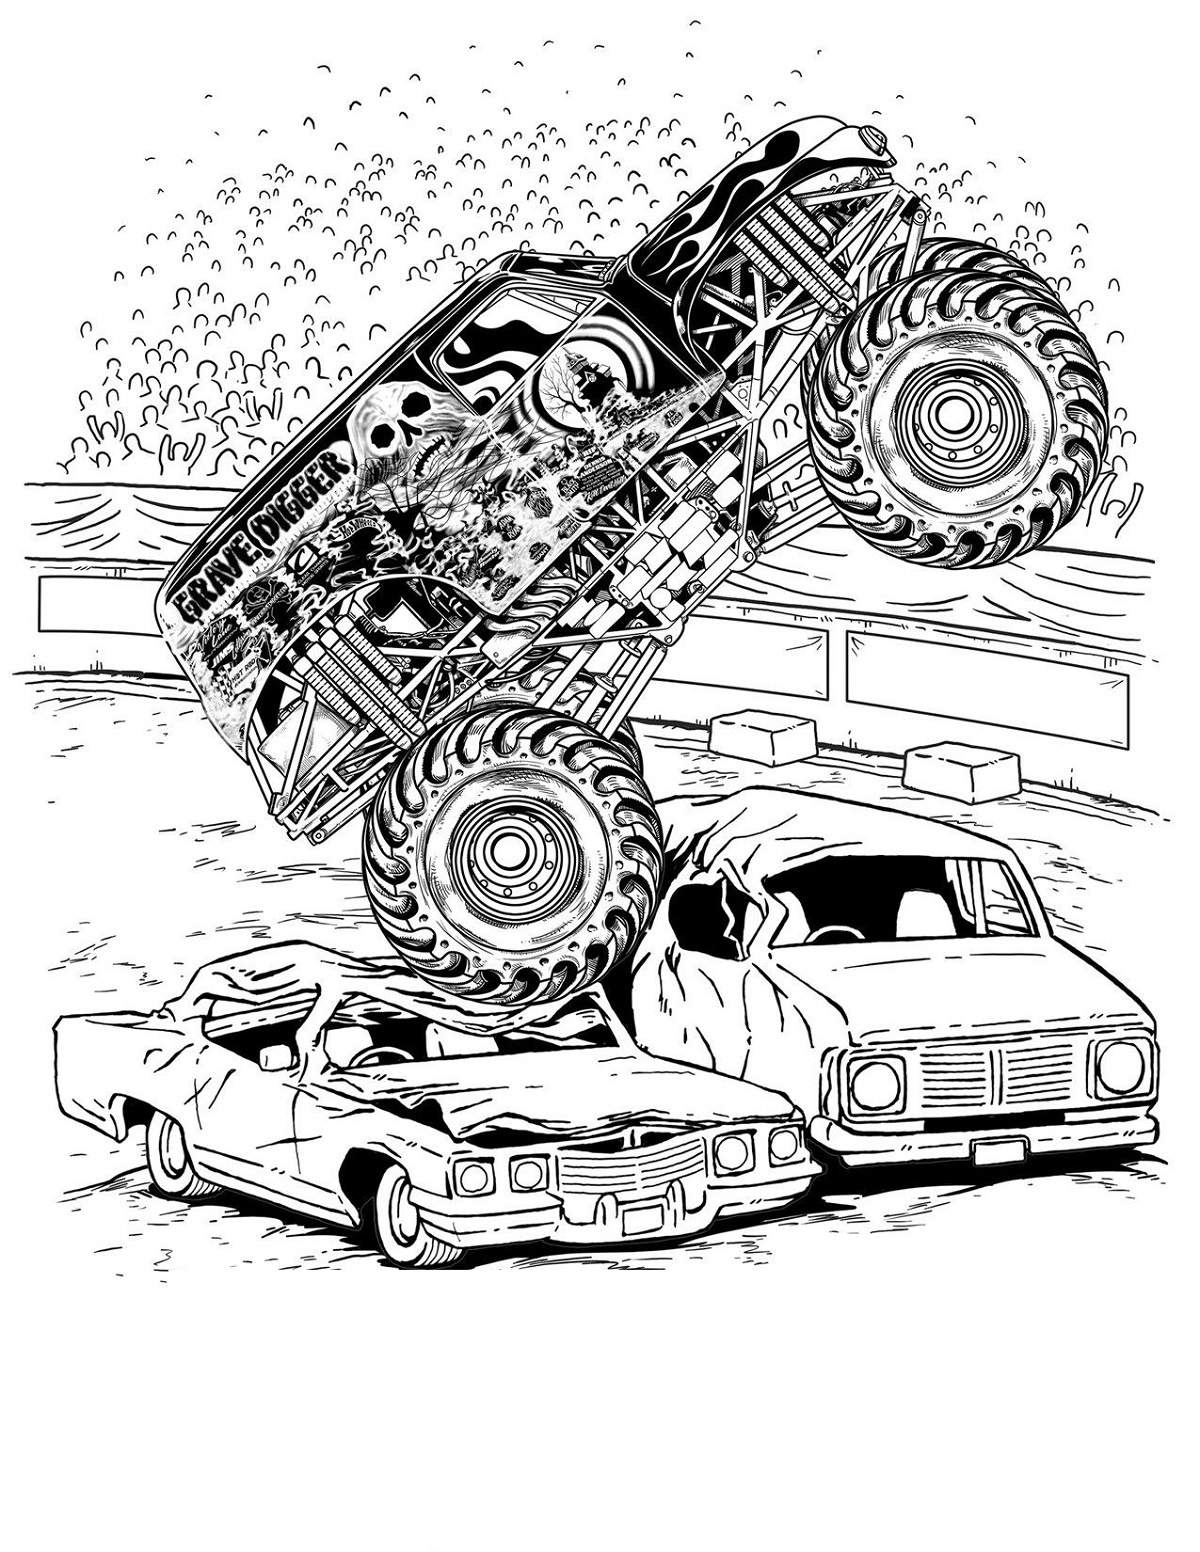 grave digger coloring page grave digger coloring pages children 101 worksheets grave digger page coloring